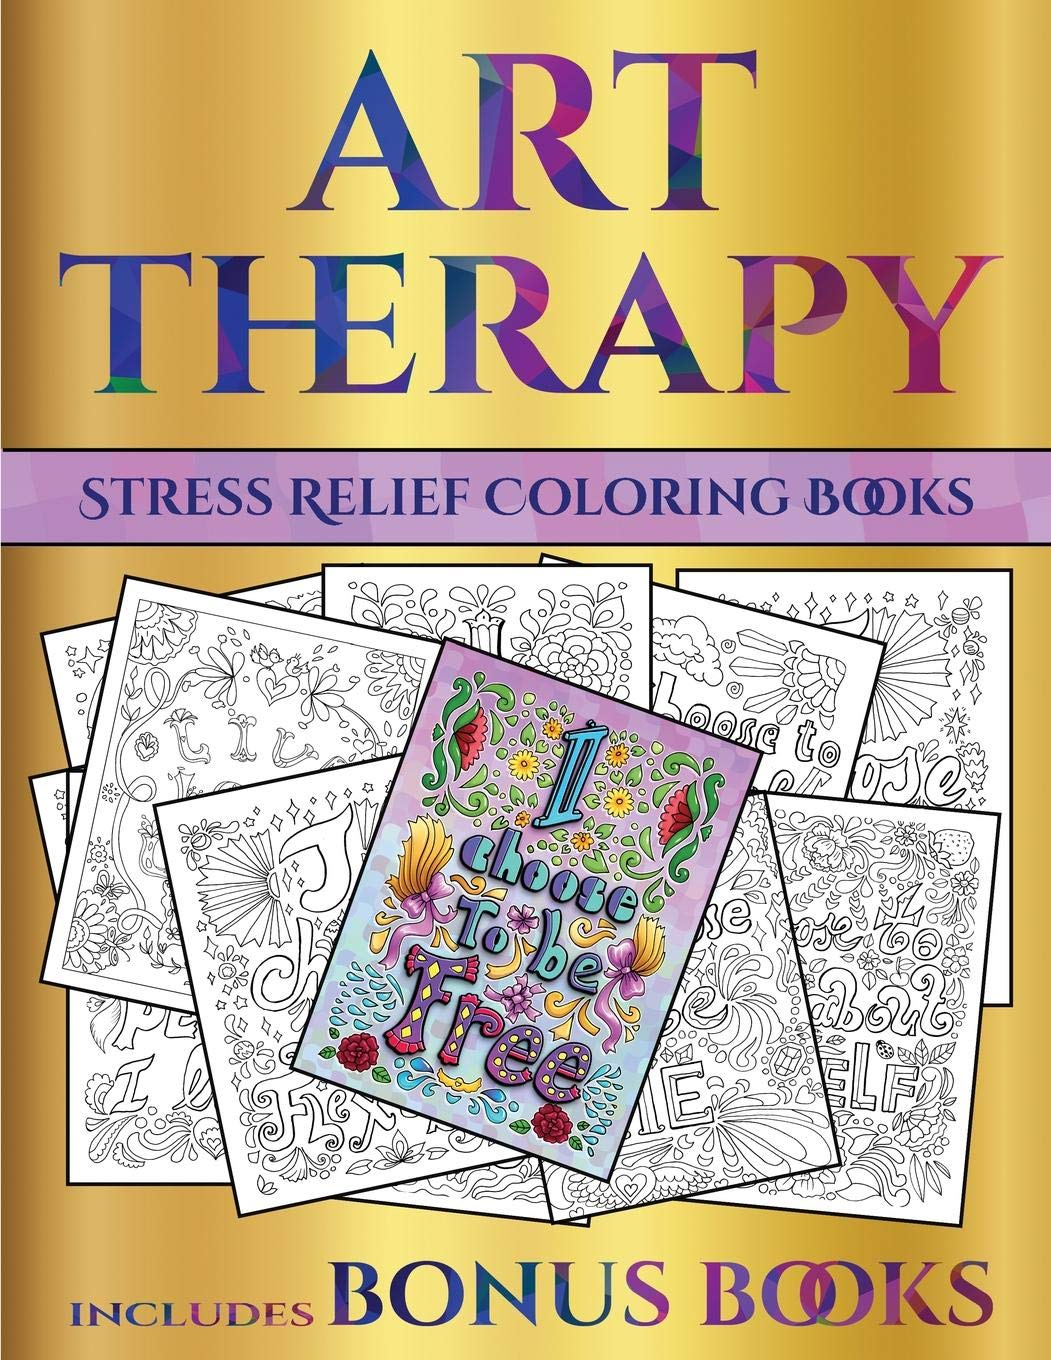 - Stress Relief Coloring Books (Art Therapy): This Book Has 40 Art